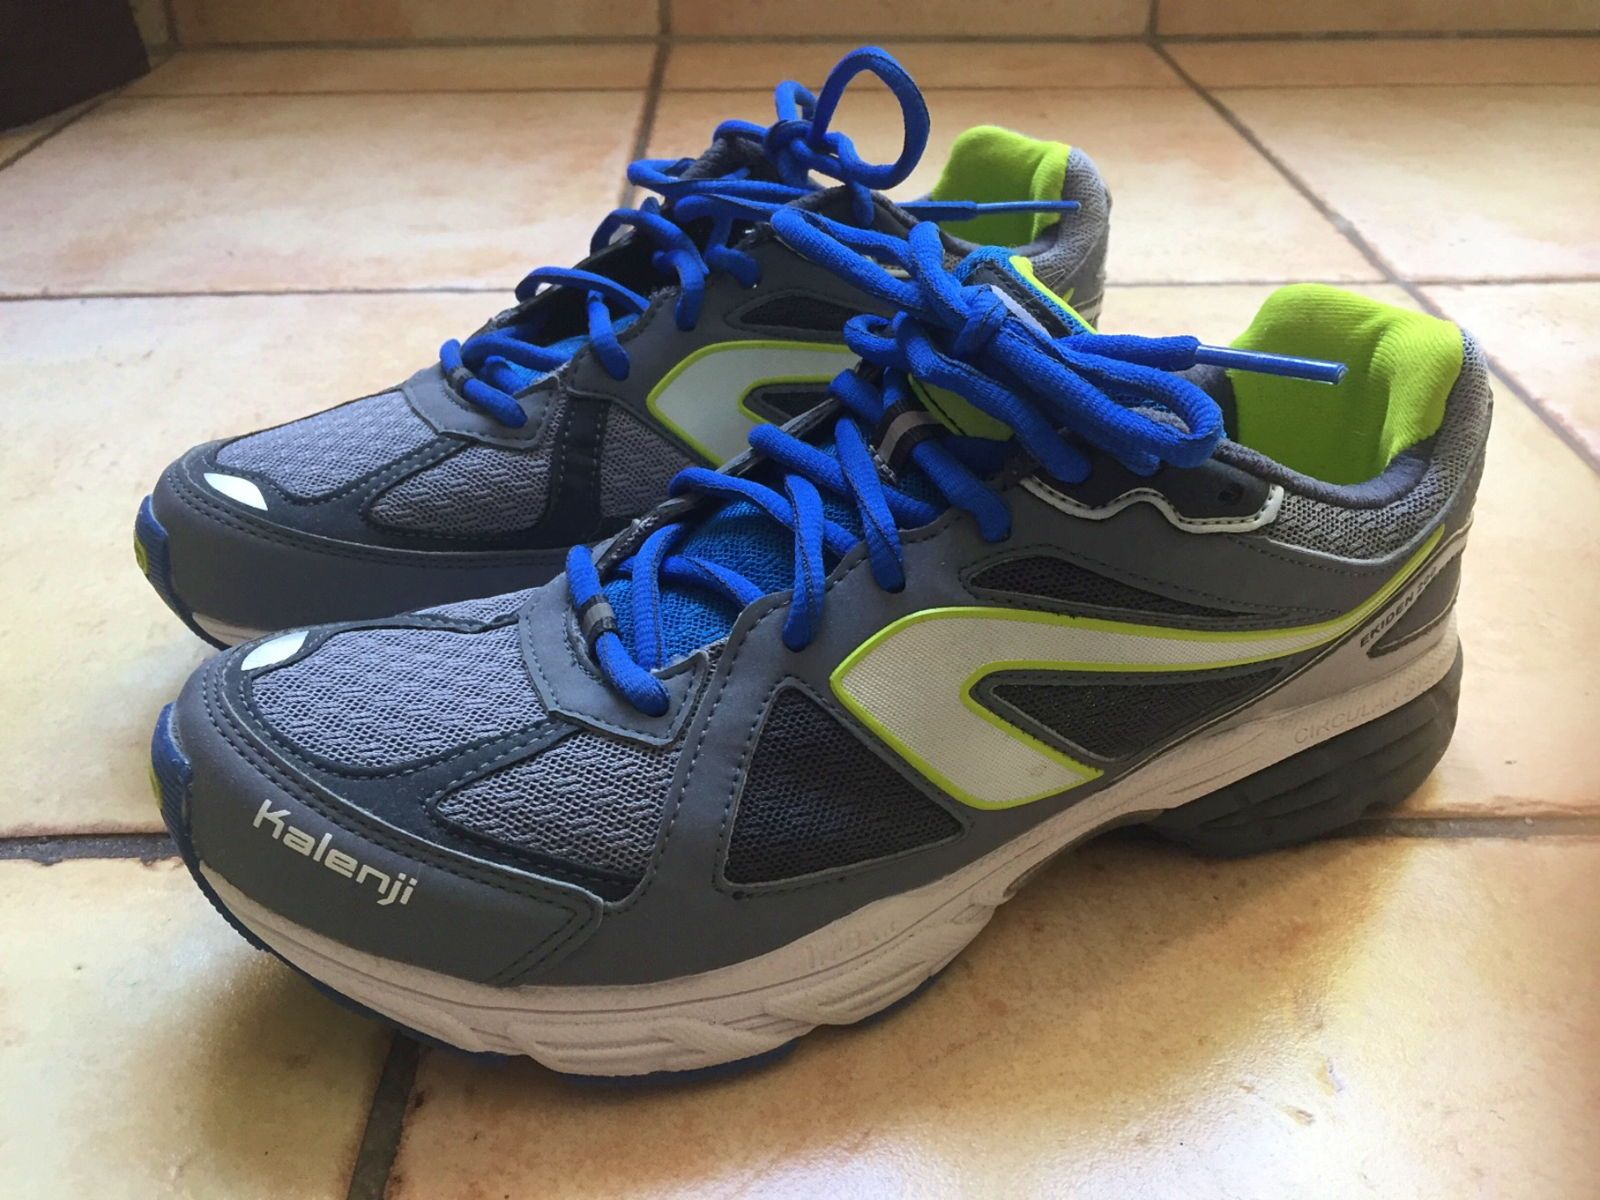 Chaussures /Baskets de running pointure 41 - Décathlon